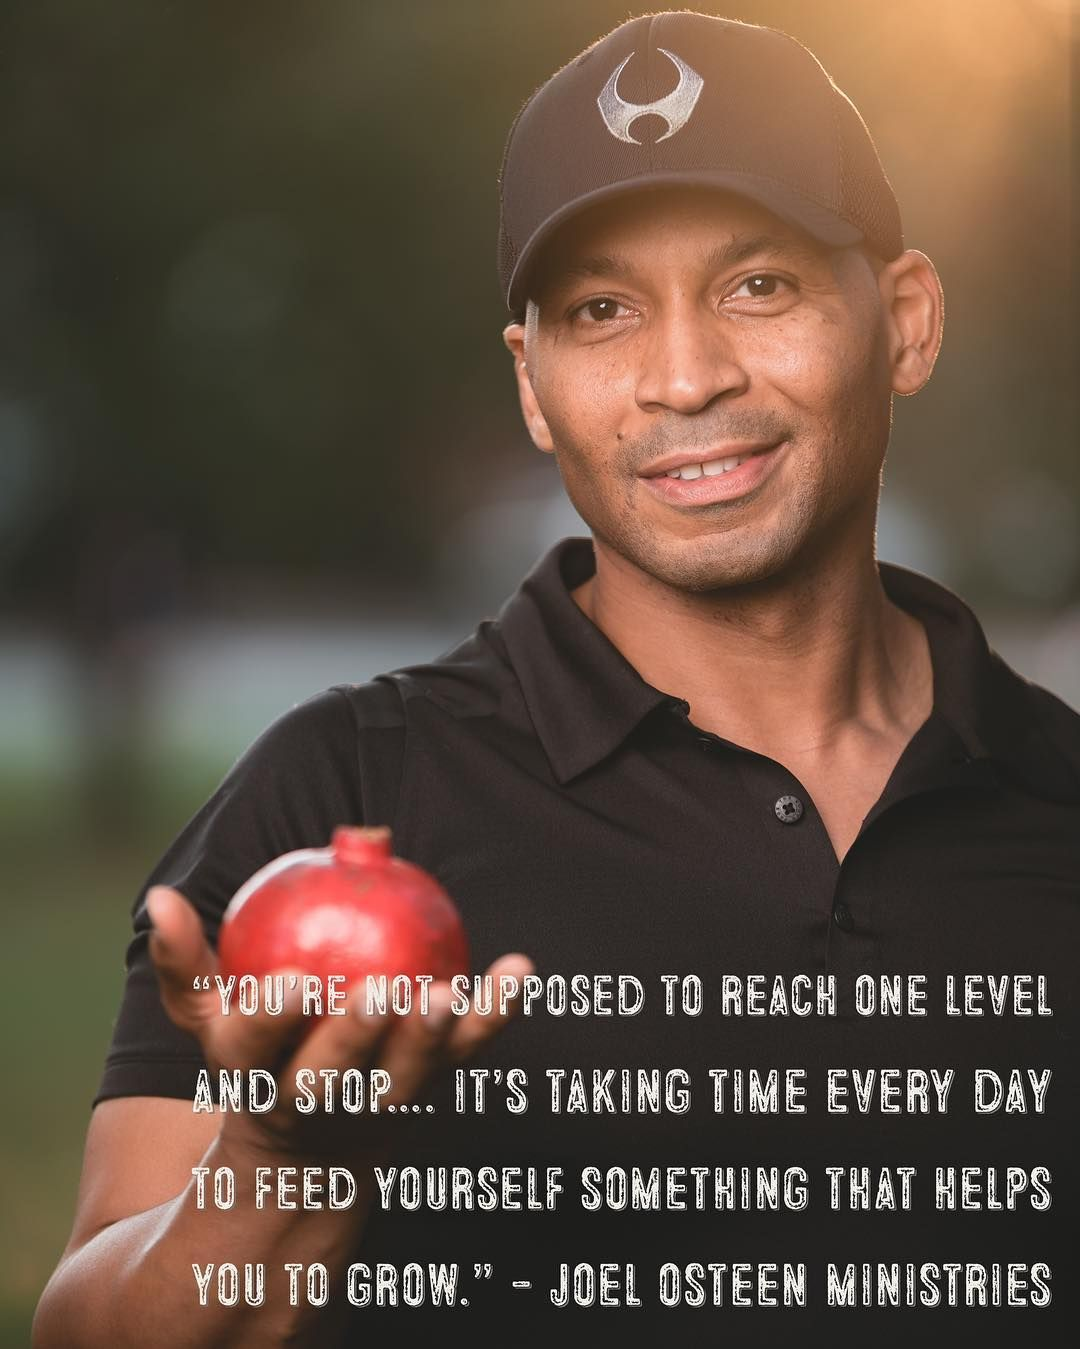 Eat Move & Be Healthy! #dcinhometrainer #positivevibes #over40andfit #personaltrainer #onlinepersonaltrainer #vegan #fitness #healthiswealth #simplicity  Photo by #chrislangfordphotography